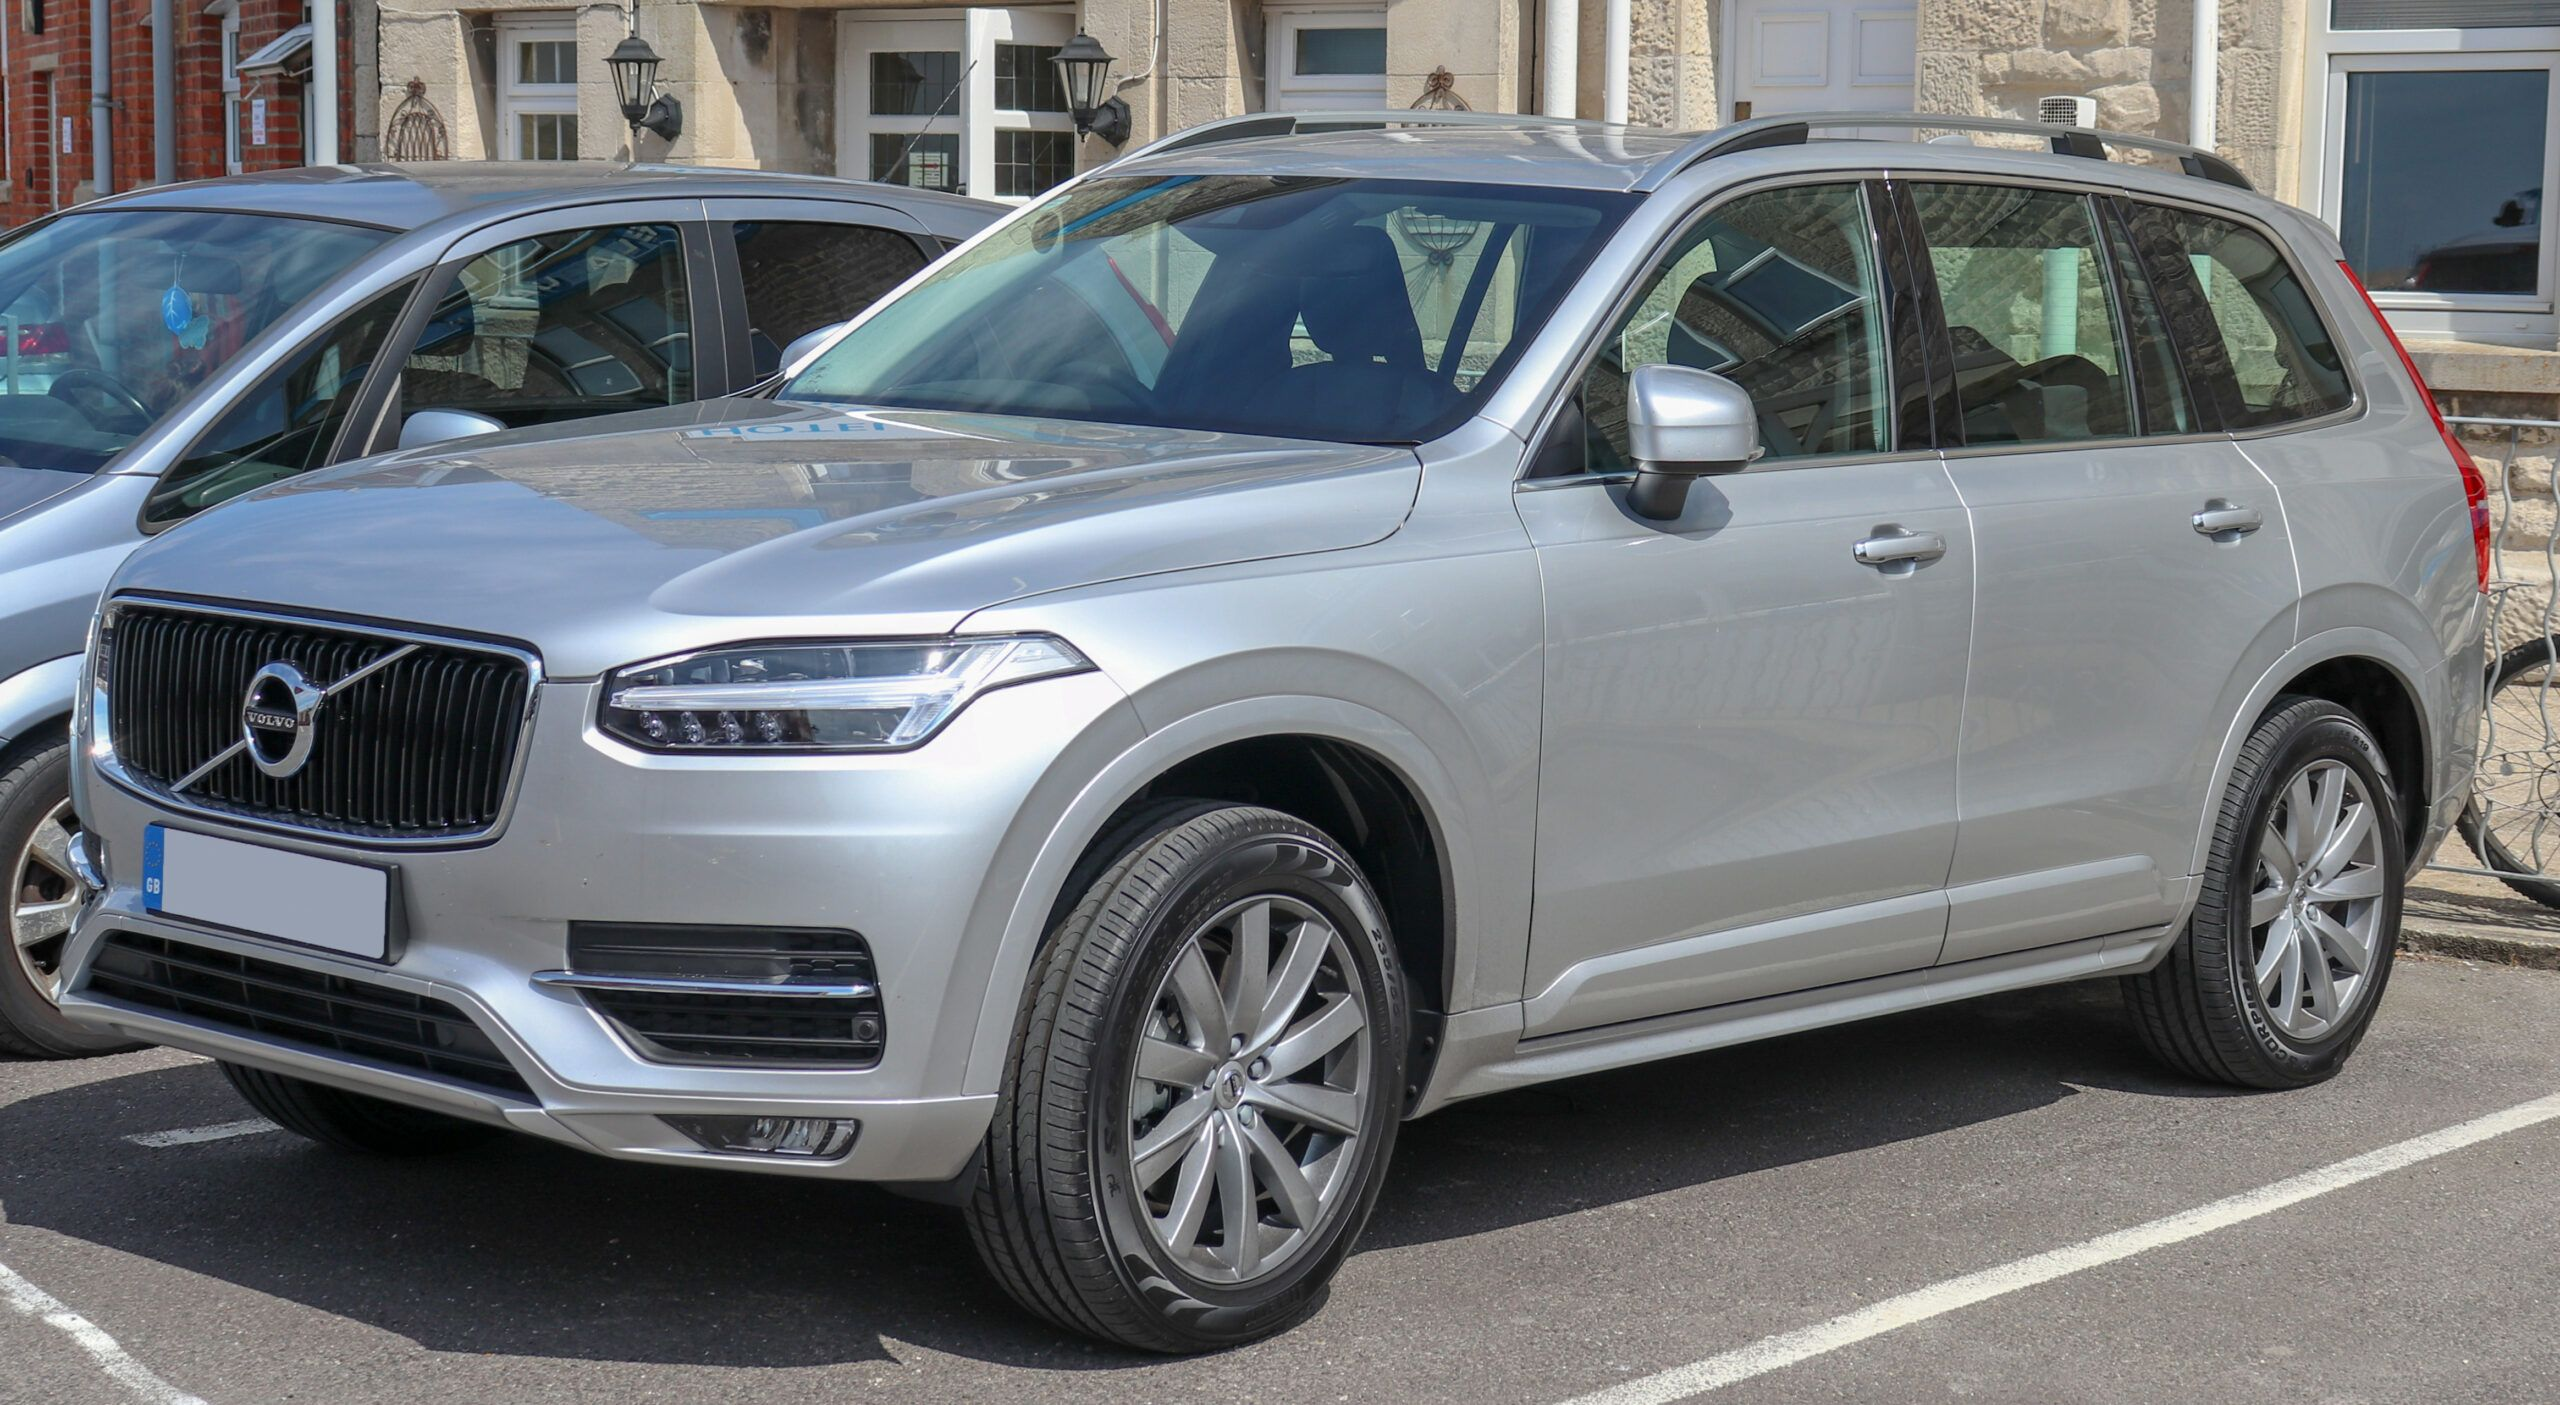 Volvo Upcoming Cars In India 2021 Configurations Volvo Xc90 Volvo Used Volvo